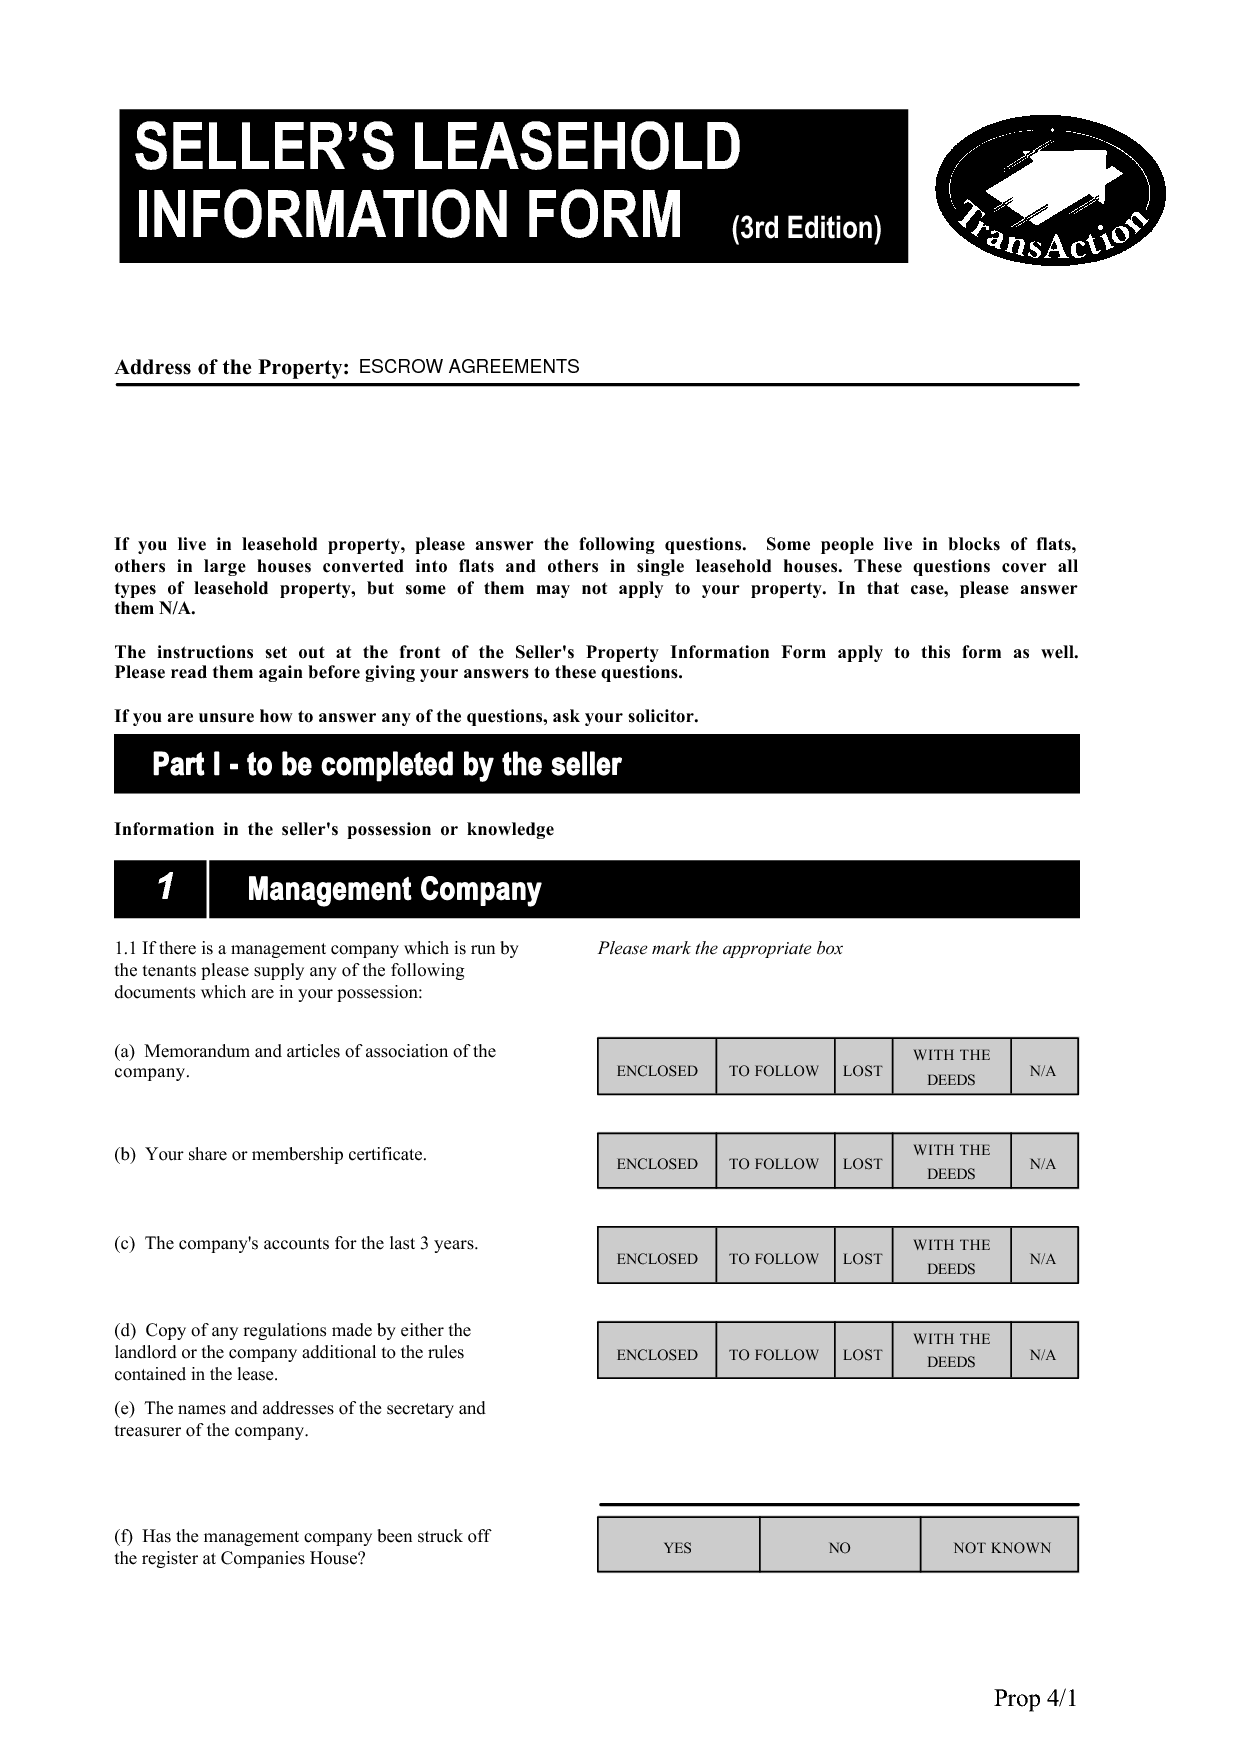 Sellers Leasehold Information Form (SLIF)